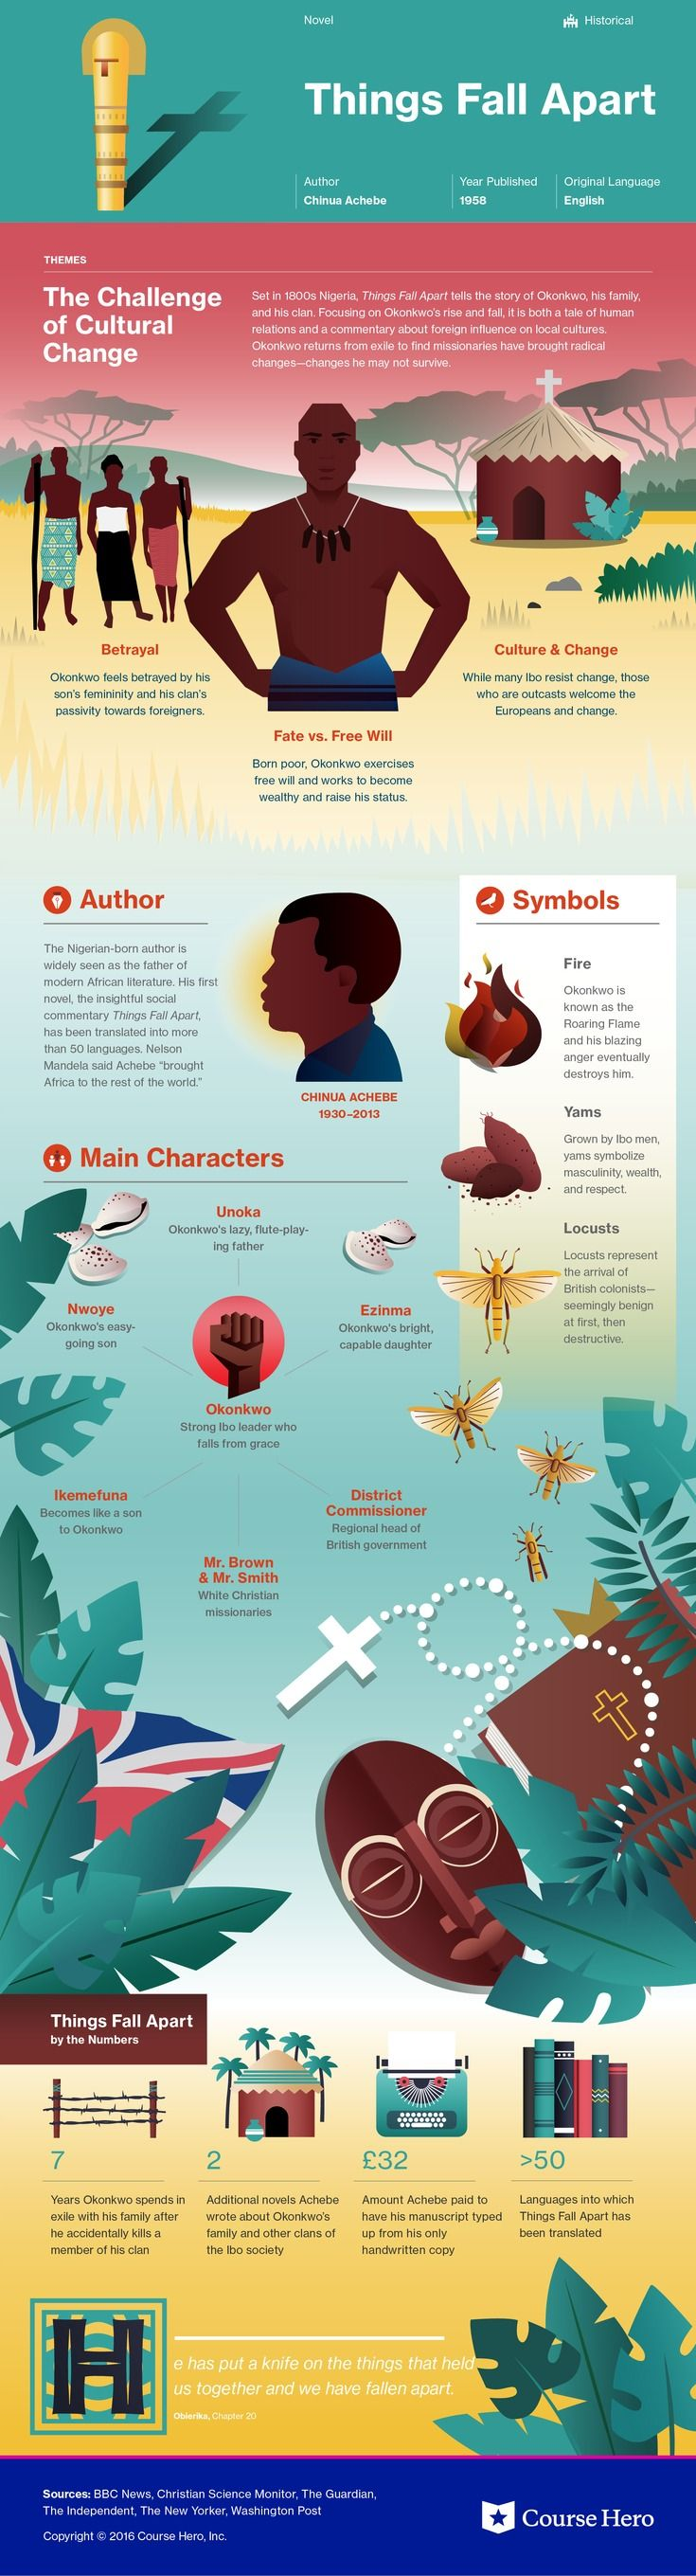 best ideas about things fall apart chinua achebe this coursehero infographic on things fall apart is both visually stunning and informative